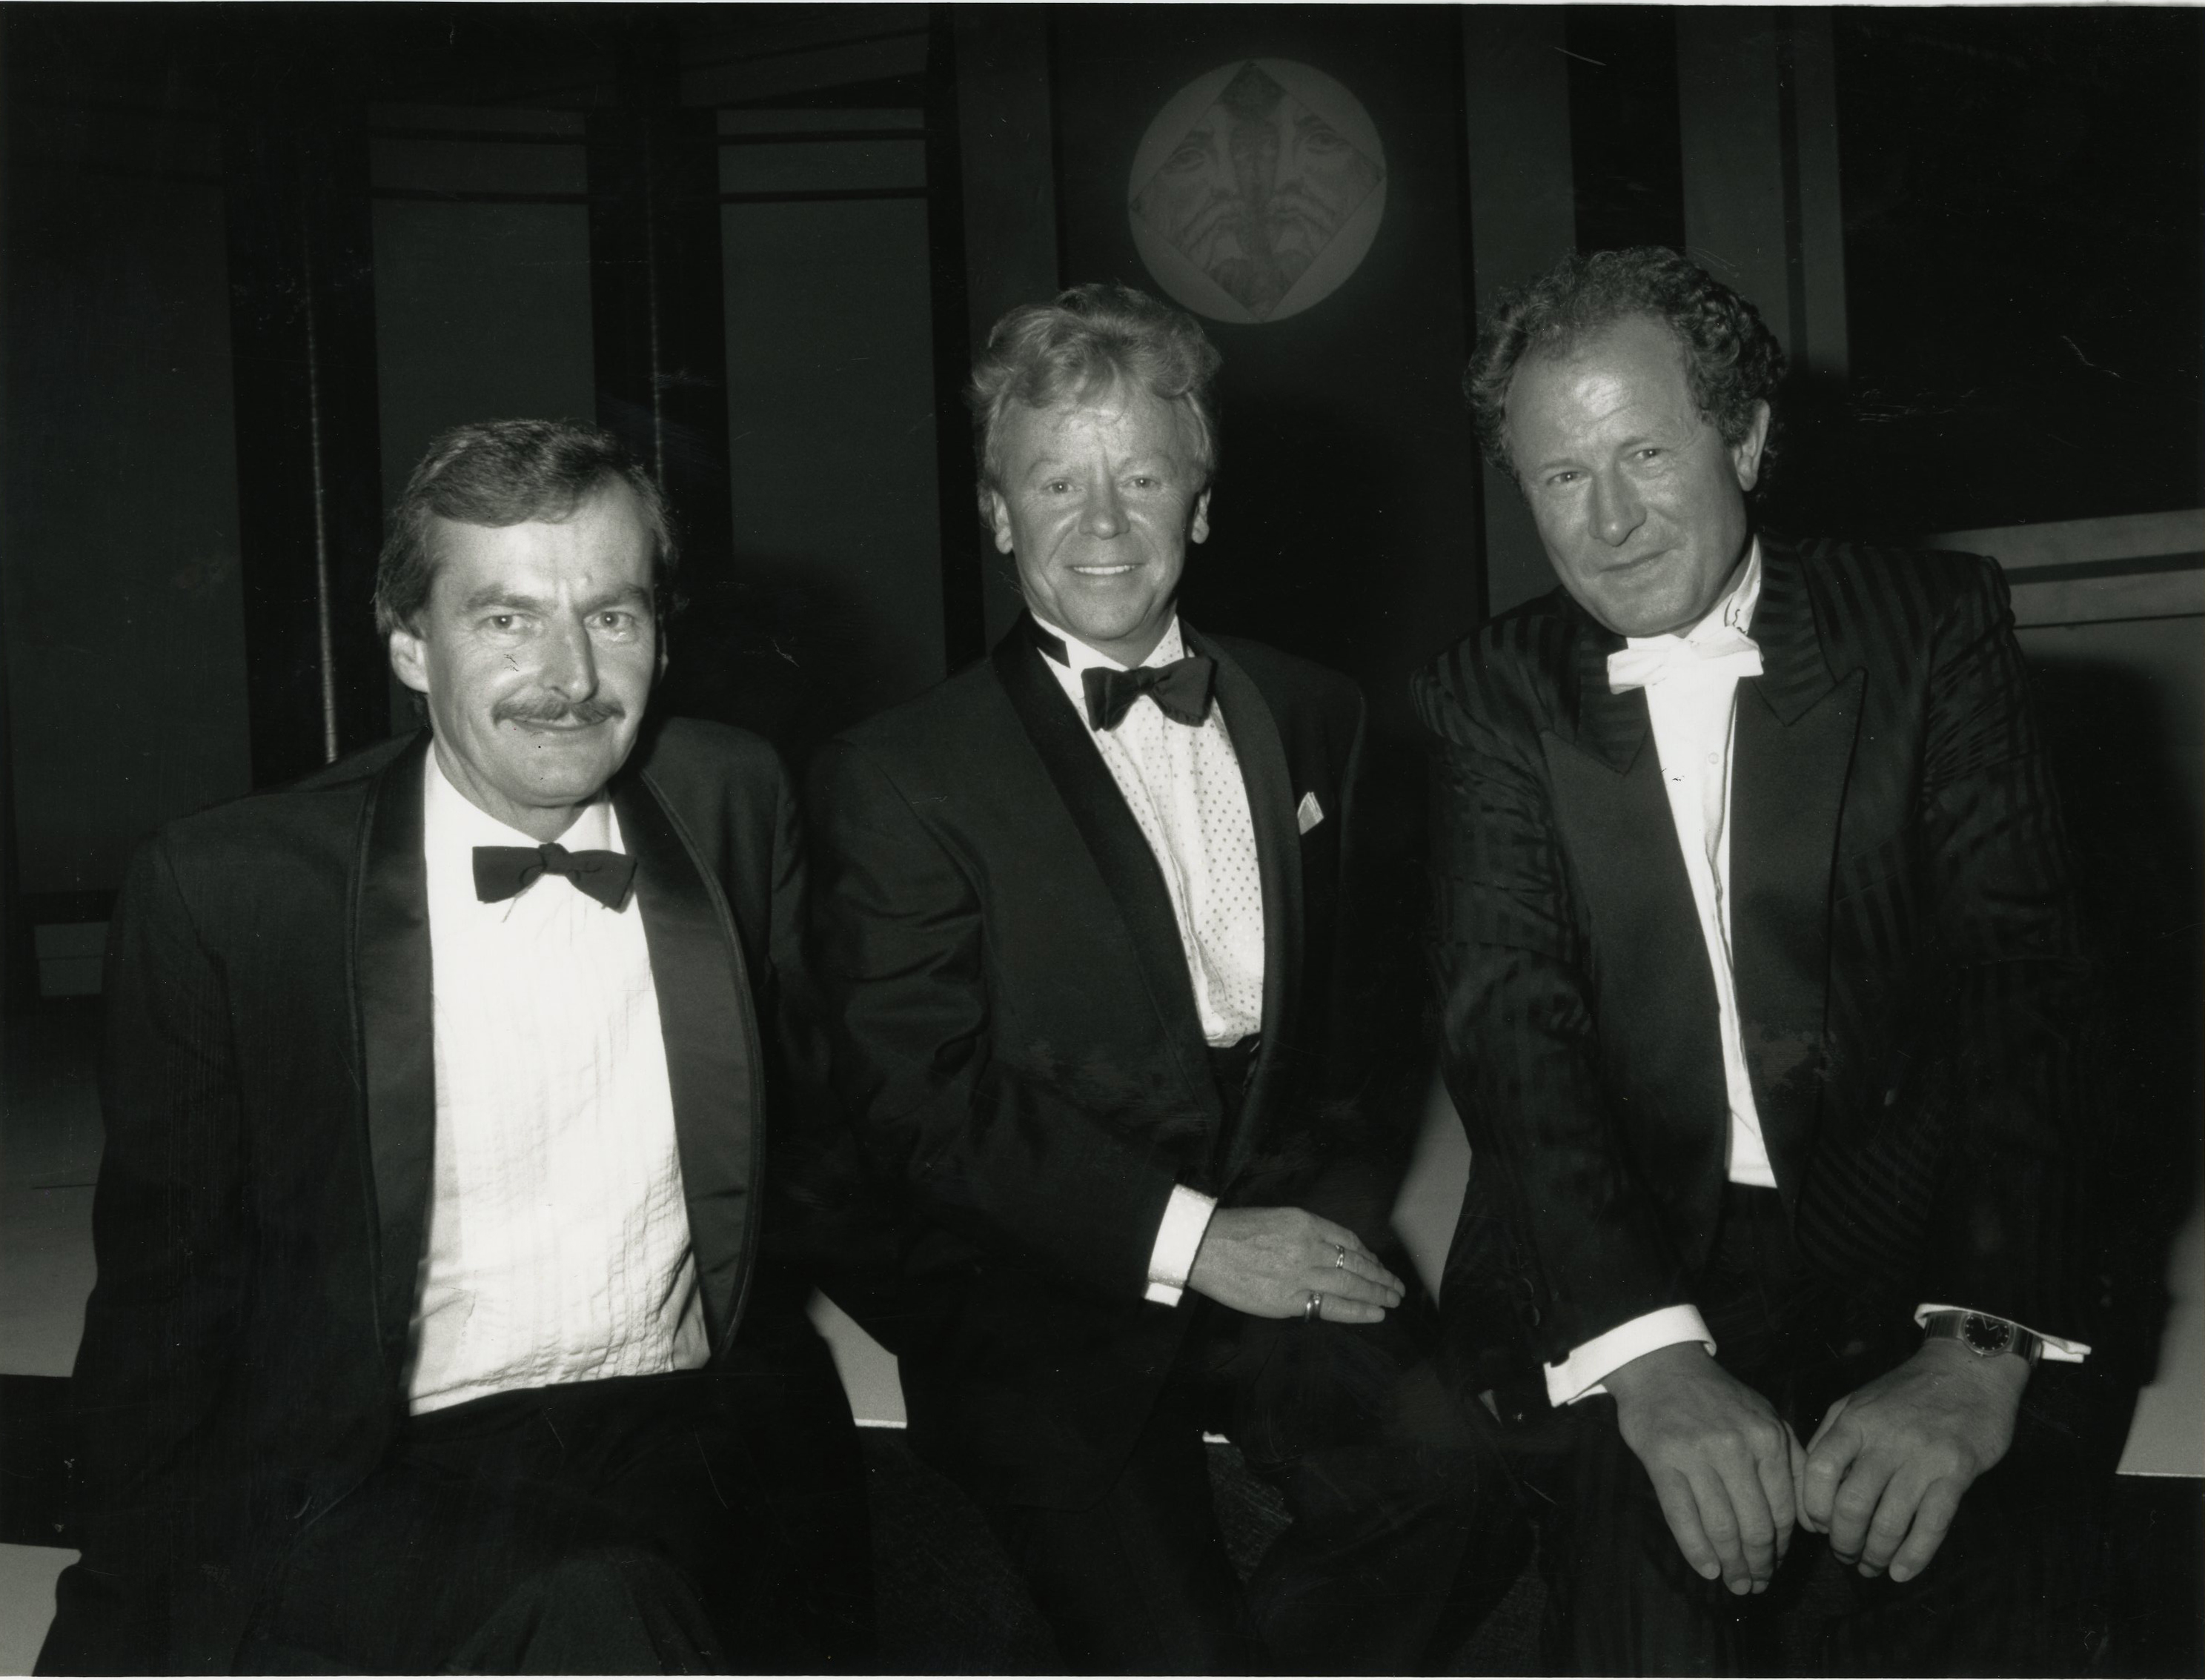 Above: Three greeting card 'muskateers'. (Left-right) Simon Elvin (founder of Simon Elvin), Jeff Bottomley (founder of Kingsley Cards) and Andrew Brownsword (founder of Andrew Brownsword Collection) at a GCCA event many moons ago.